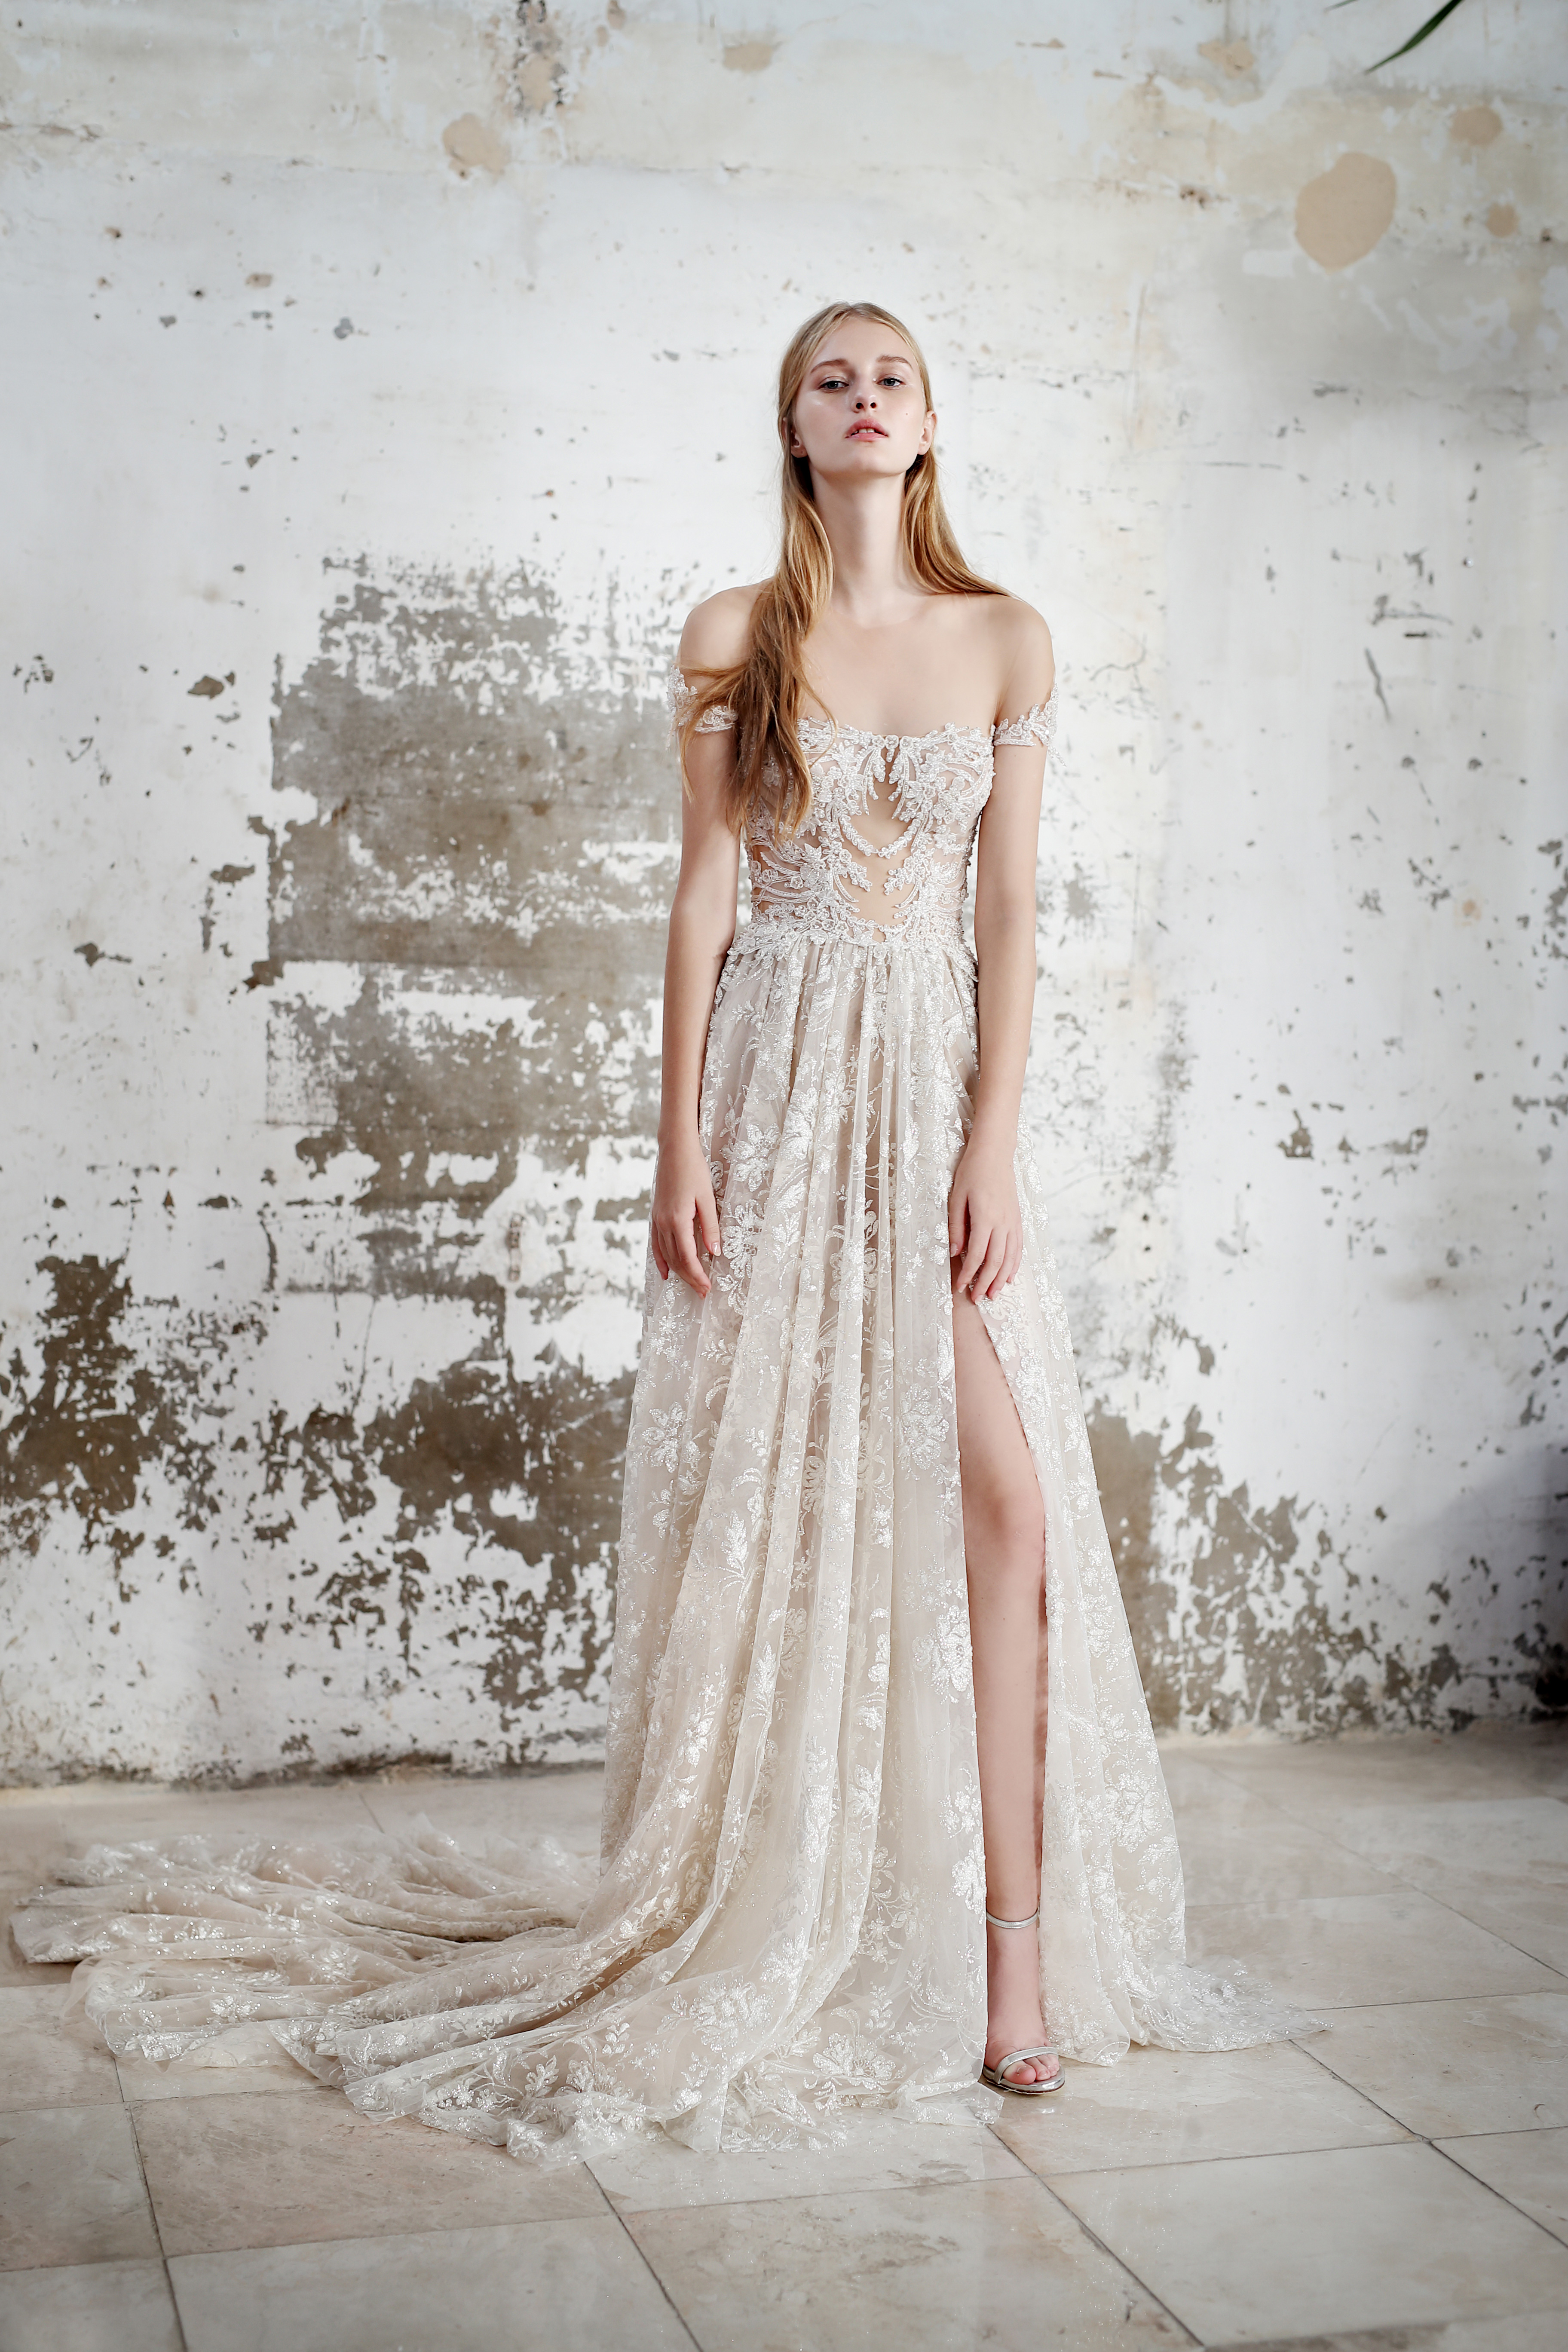 Gala by Galia Lahav off the shoulder wedding dress fall 2019